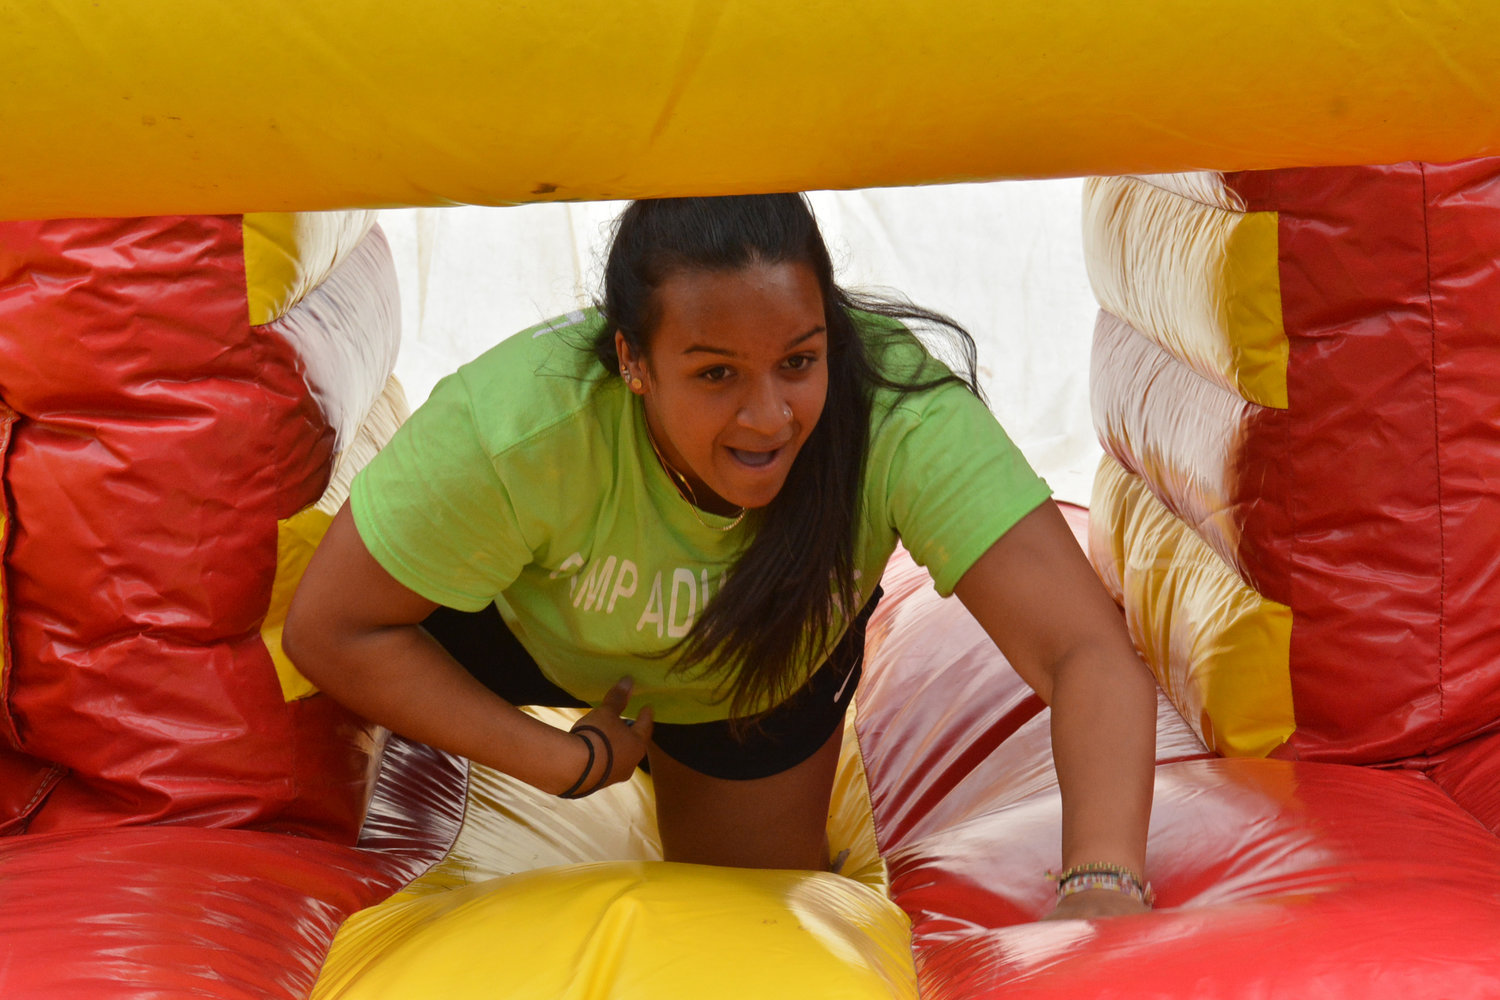 FUN INTERNSHIP — Julia DePietro, 19, is a Westmoreland High School graduating senior and a camp councilor at the Westmoreland Town Park Summer Youth Camp. Her she is playing with the kids who are on the other side of the blow-up tunnel. Seniors and juniors from Westmoreland, who are entering college in a related field typically sign on for these positions.